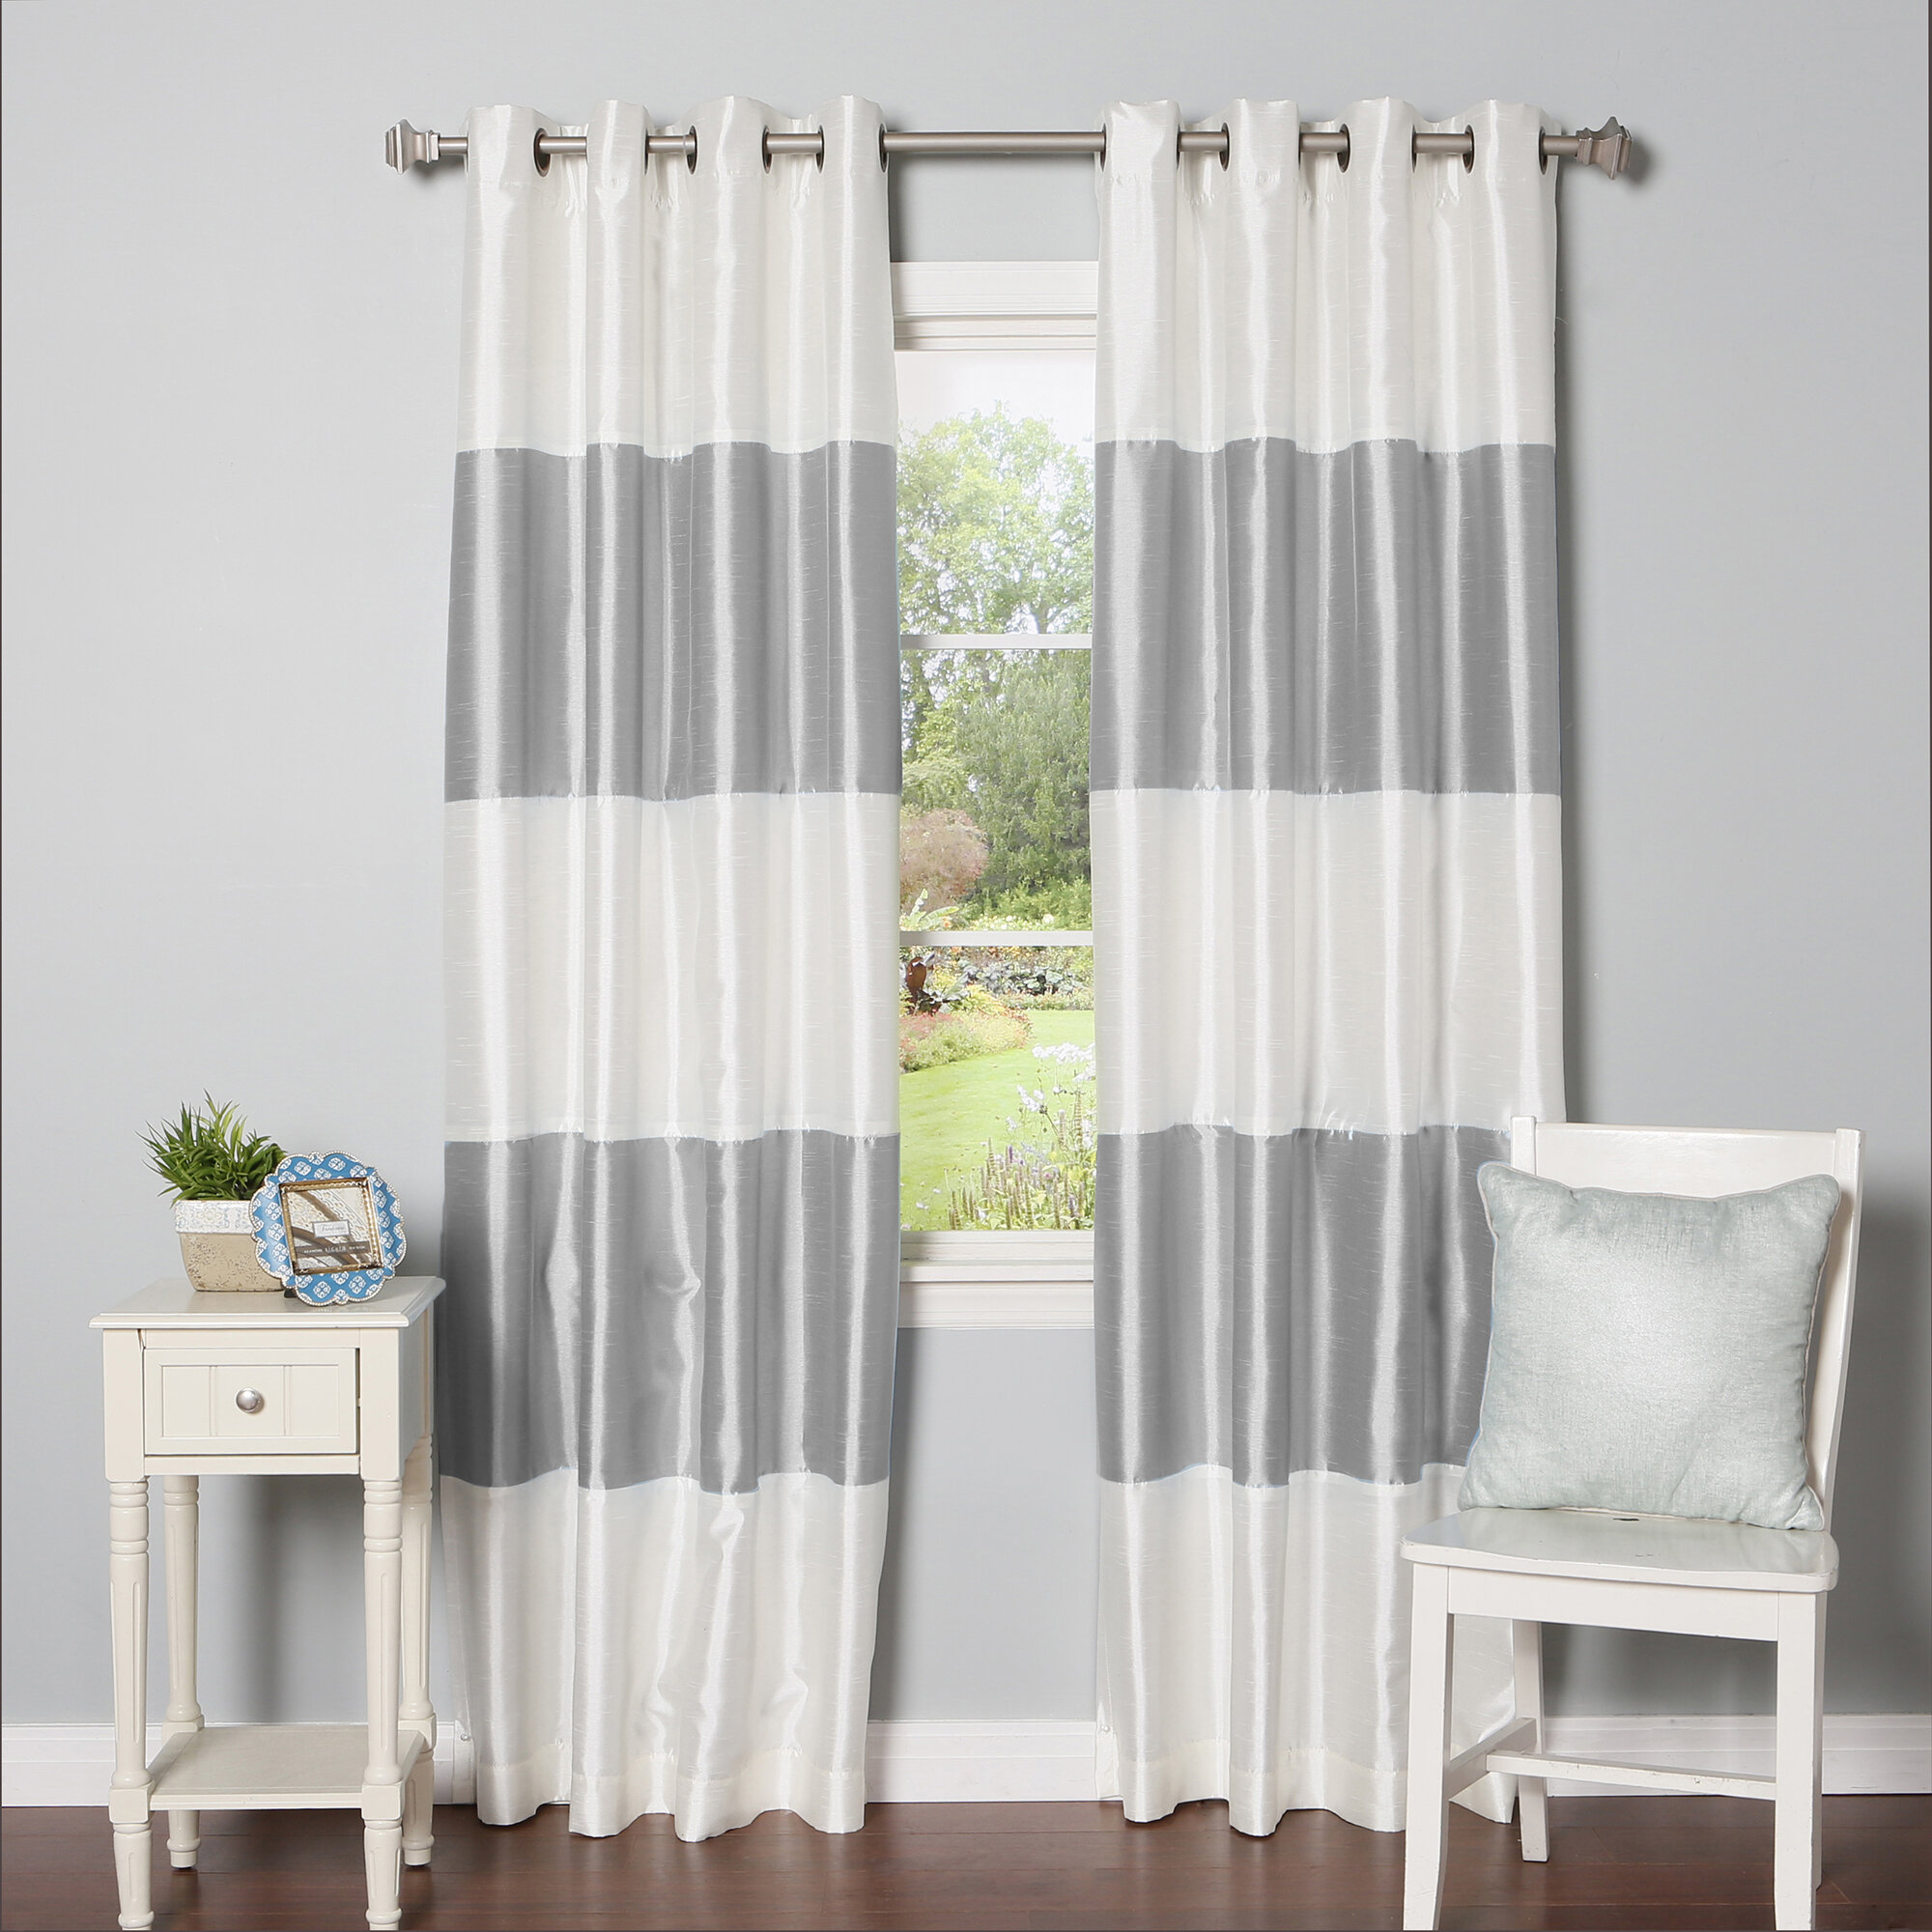 Luxury thermal Insulated Blackout Curtains